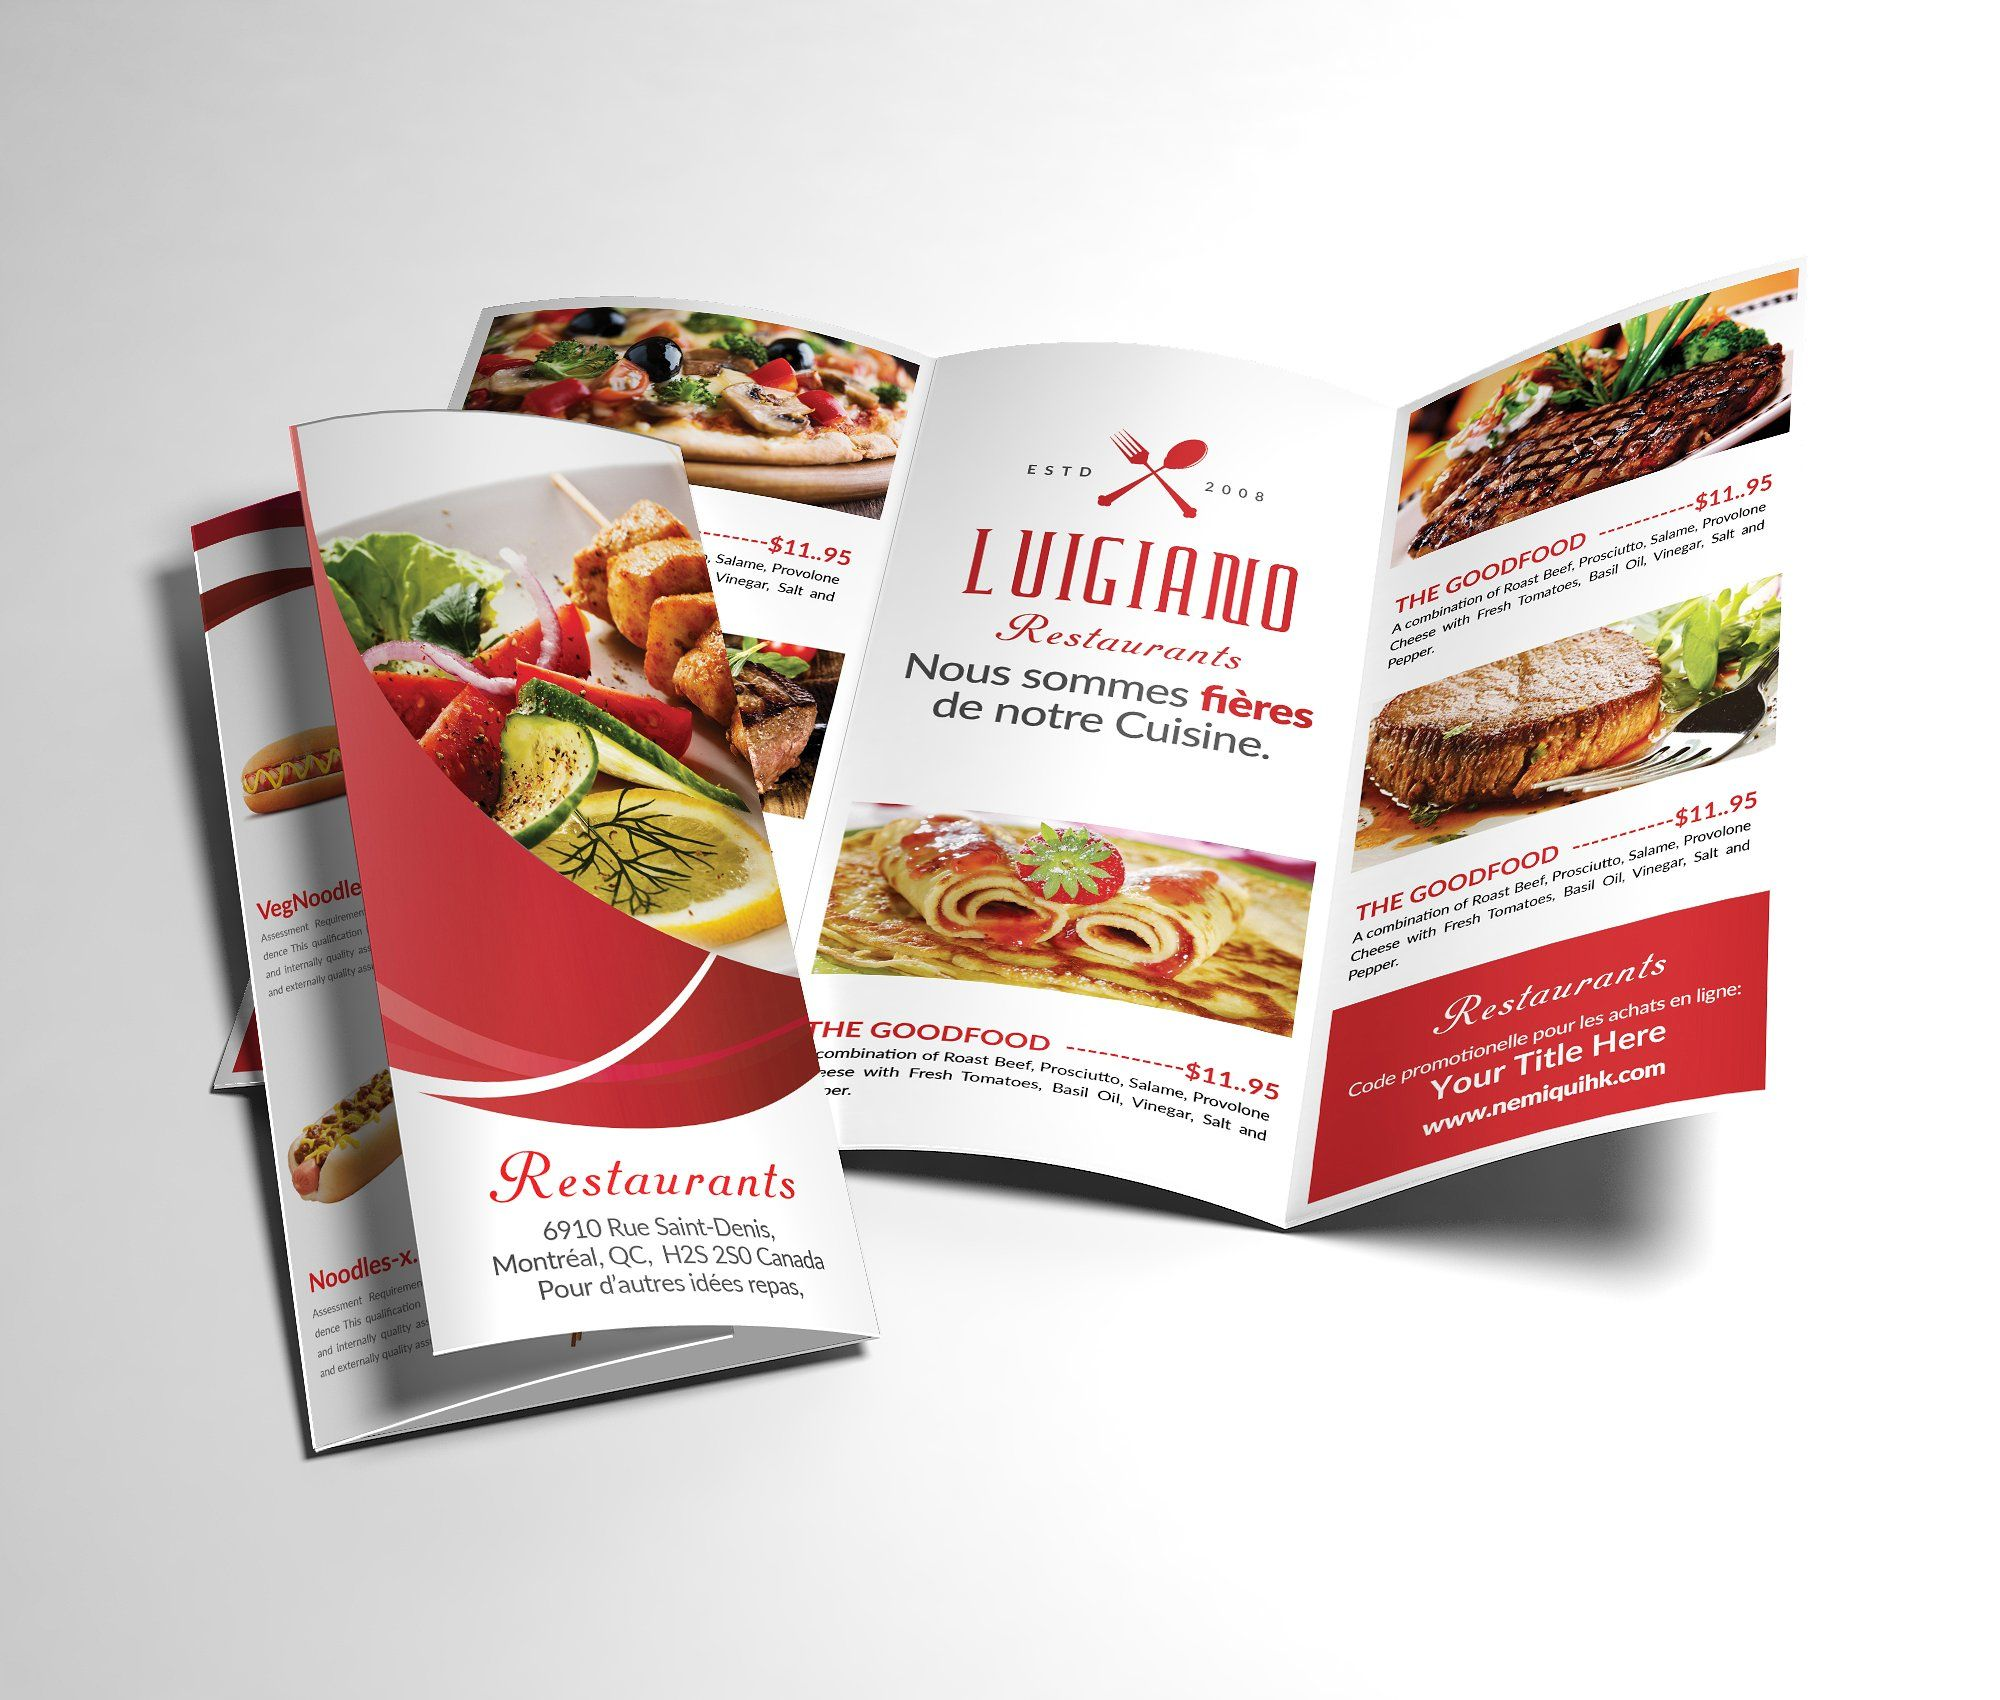 Restaurant Menu TriFold Brochure By Afzaalgraphics On